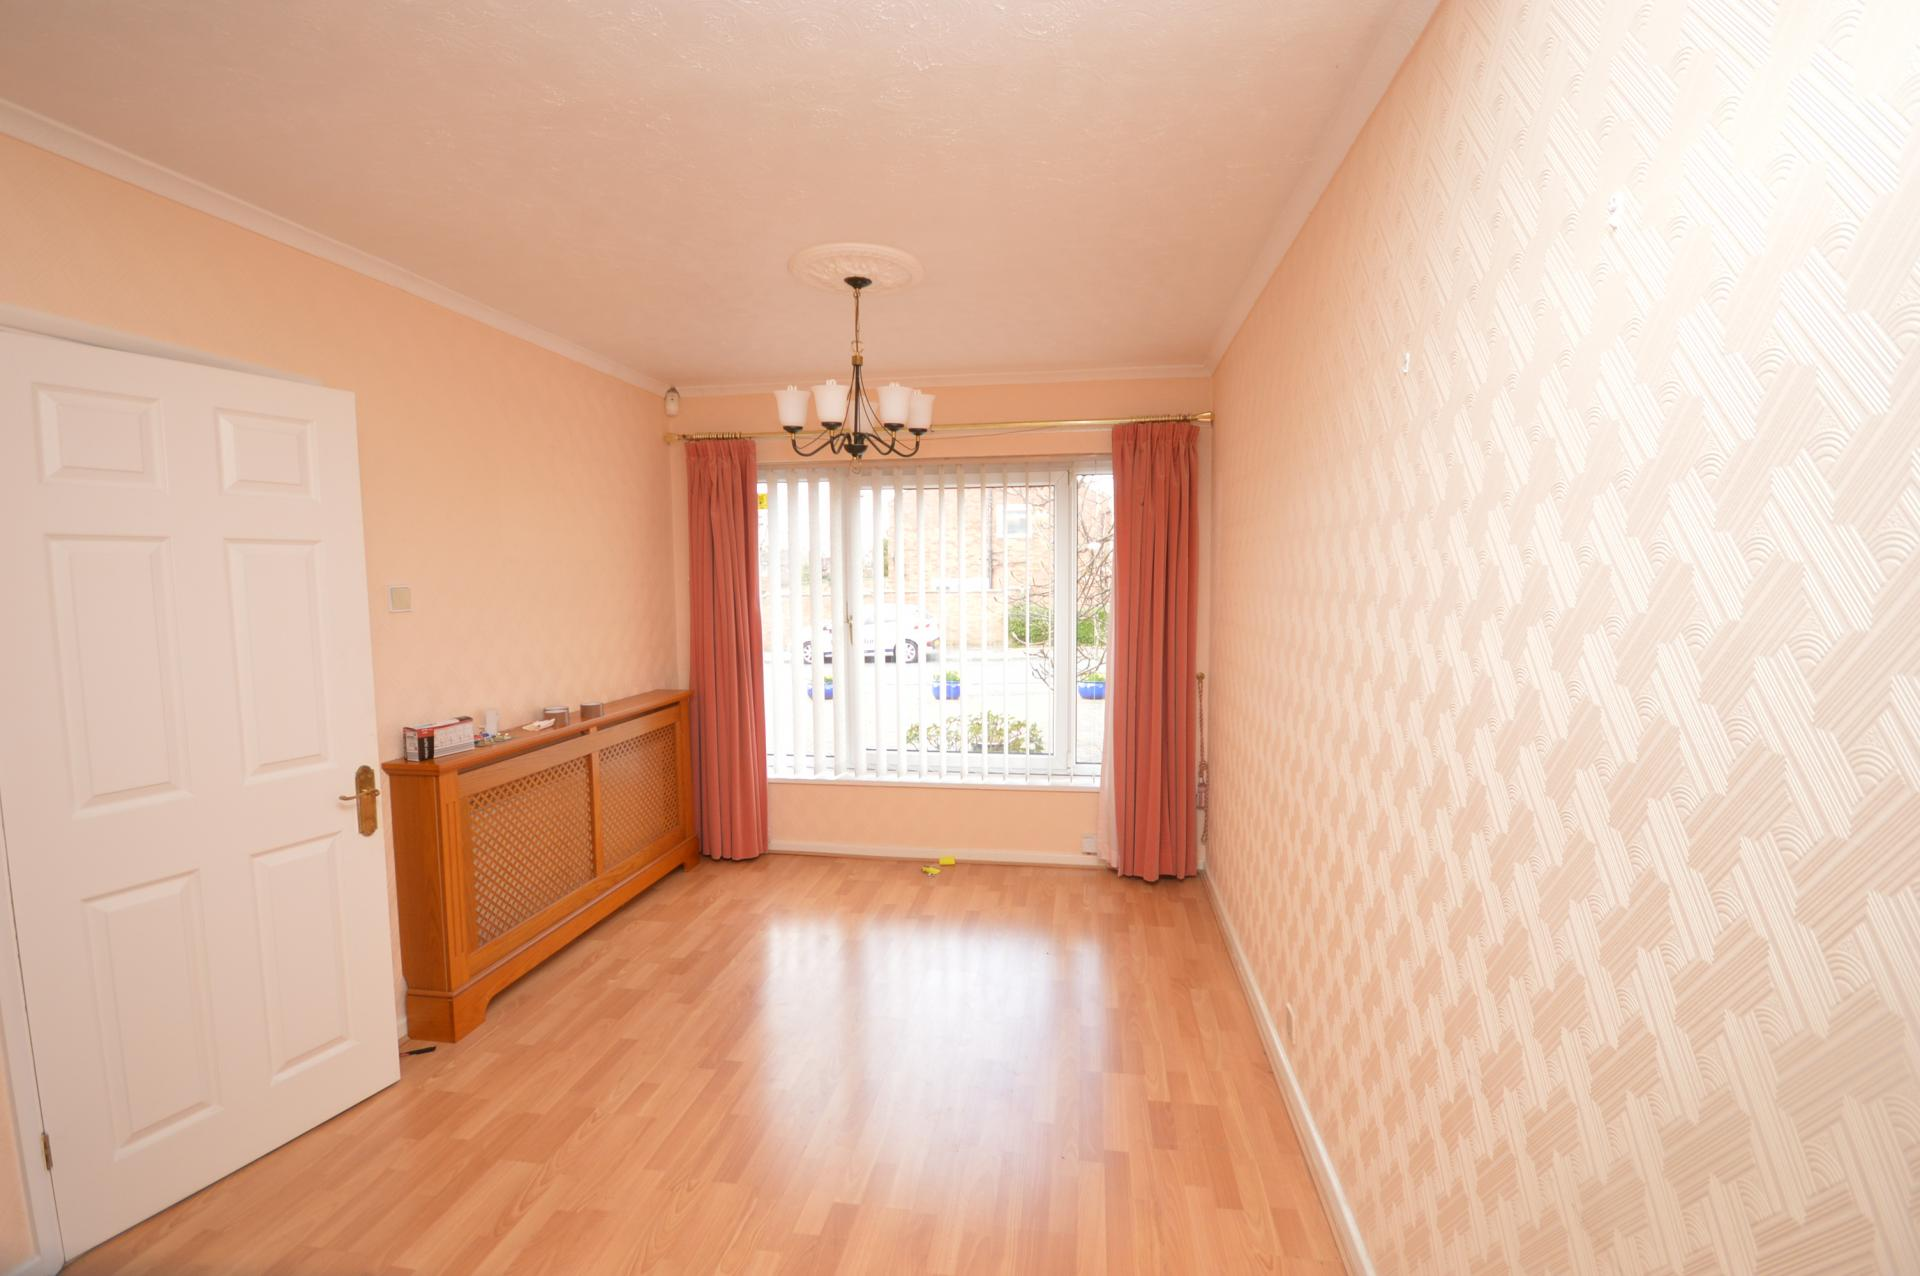 3 Bedroom House For Rent In Luton